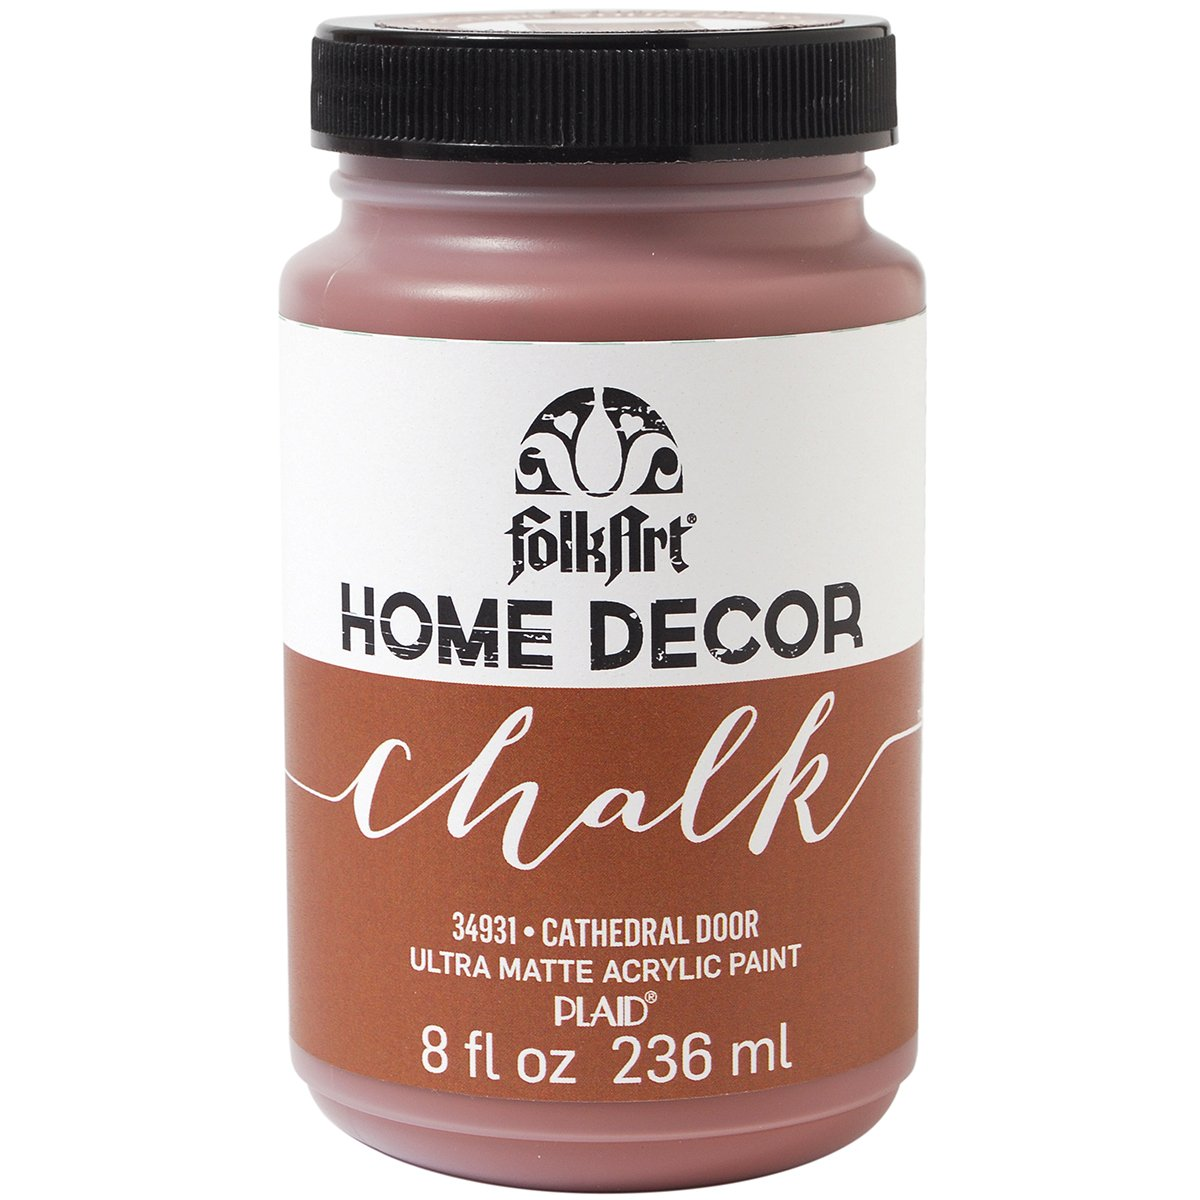 FolkArt Home Decor Chalk Furniture & Craft Paint in Assorted Colors (8-Ounce), 34156 Yellow Crochet Plaid Inc.